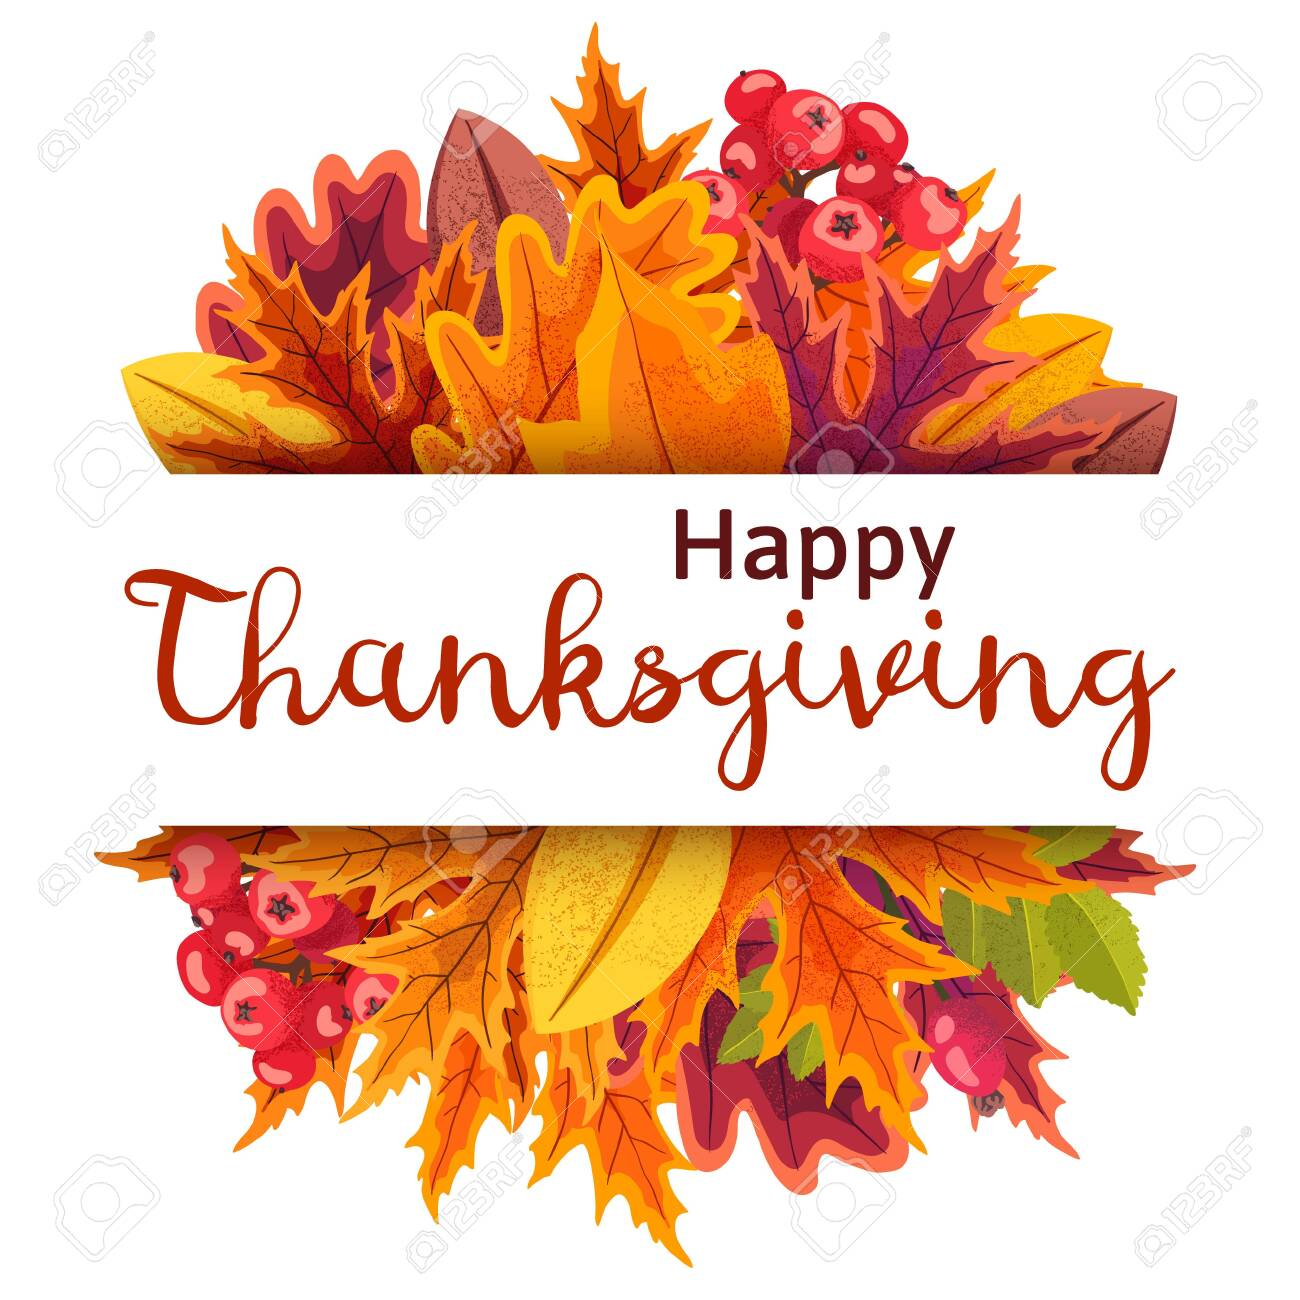 Happy Thanksgiving background with stylized autumn leaves. - 131963491